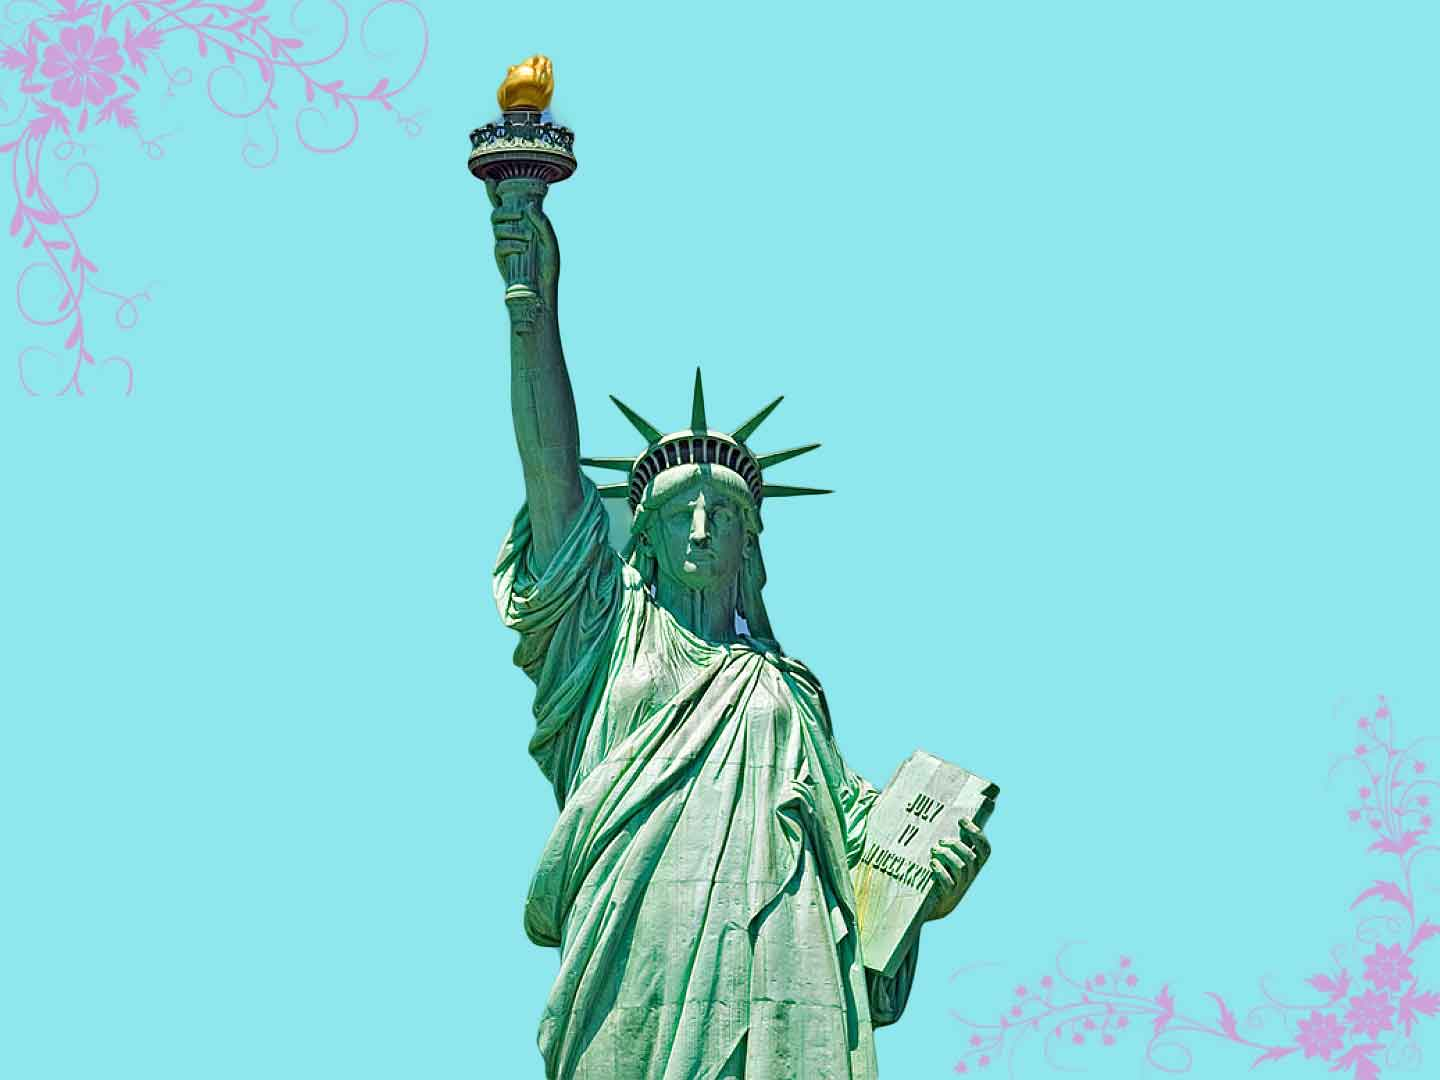 Statue of Liberty images statue of liberty HD wallpaper and background ...